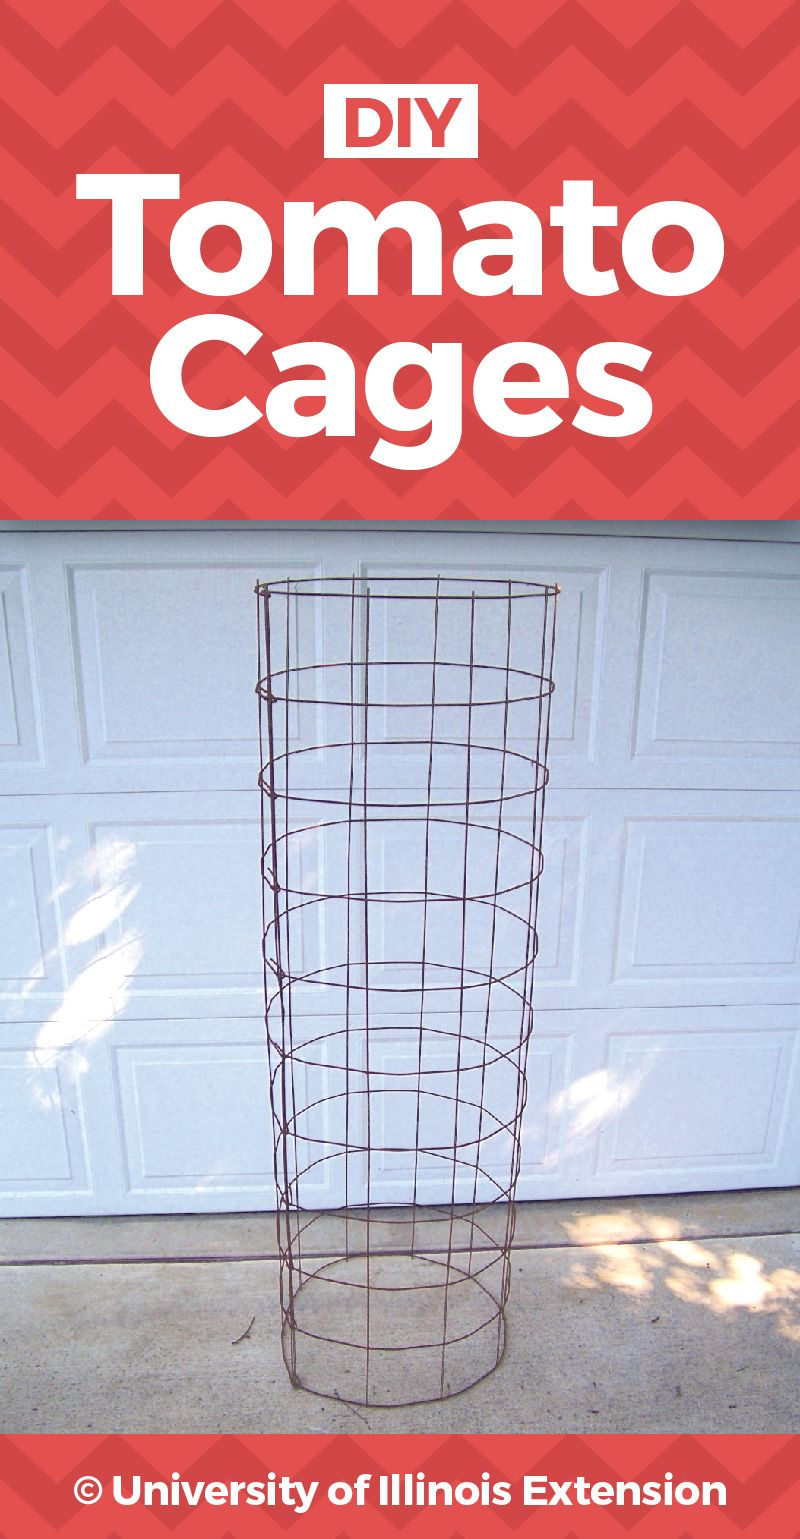 Diy Tomato Cages Pdf With Step By Step Instructions Tomato Cages Vege Garden Ideas Tomato